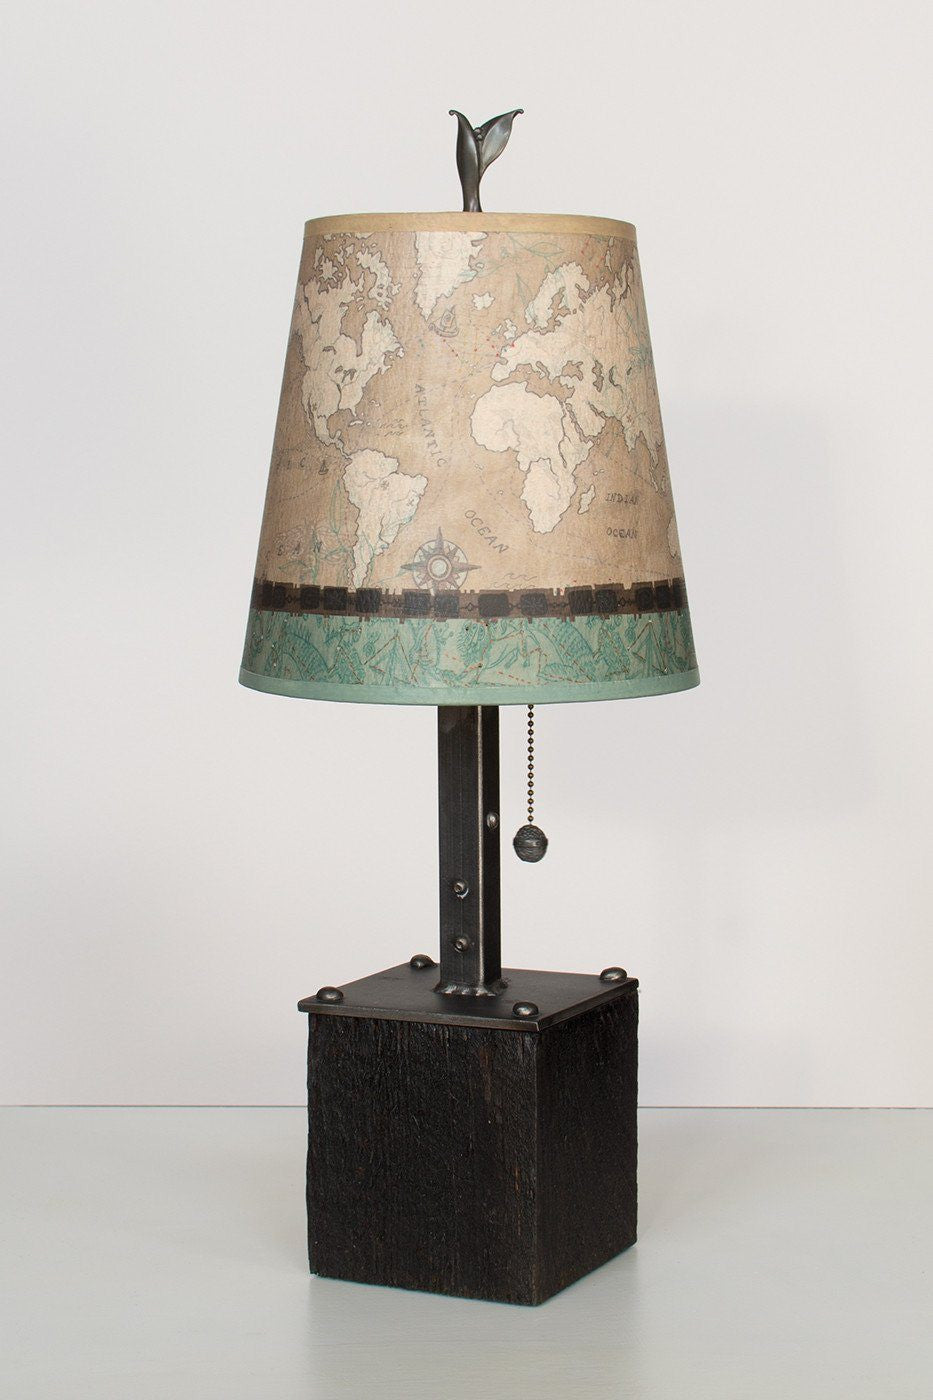 Steel Table Lamp on Reclaimed Wood with Small Drum Shade in Sand Map Lit